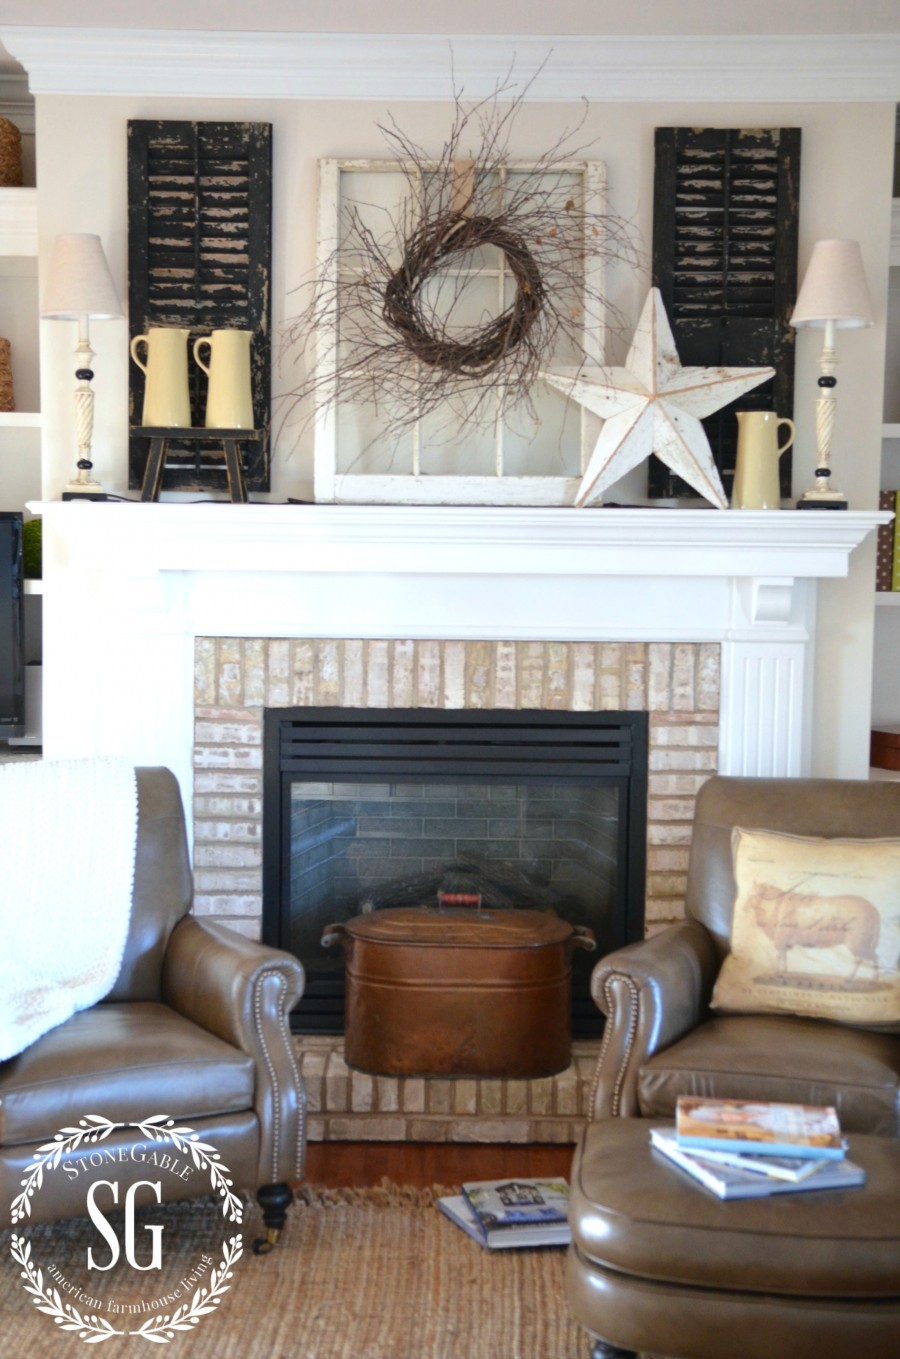 Home design decor on pinterest outdoor sitting areas fixer upper and luxury homes - Fireplace mantel designs in simple and sophisticated style ...